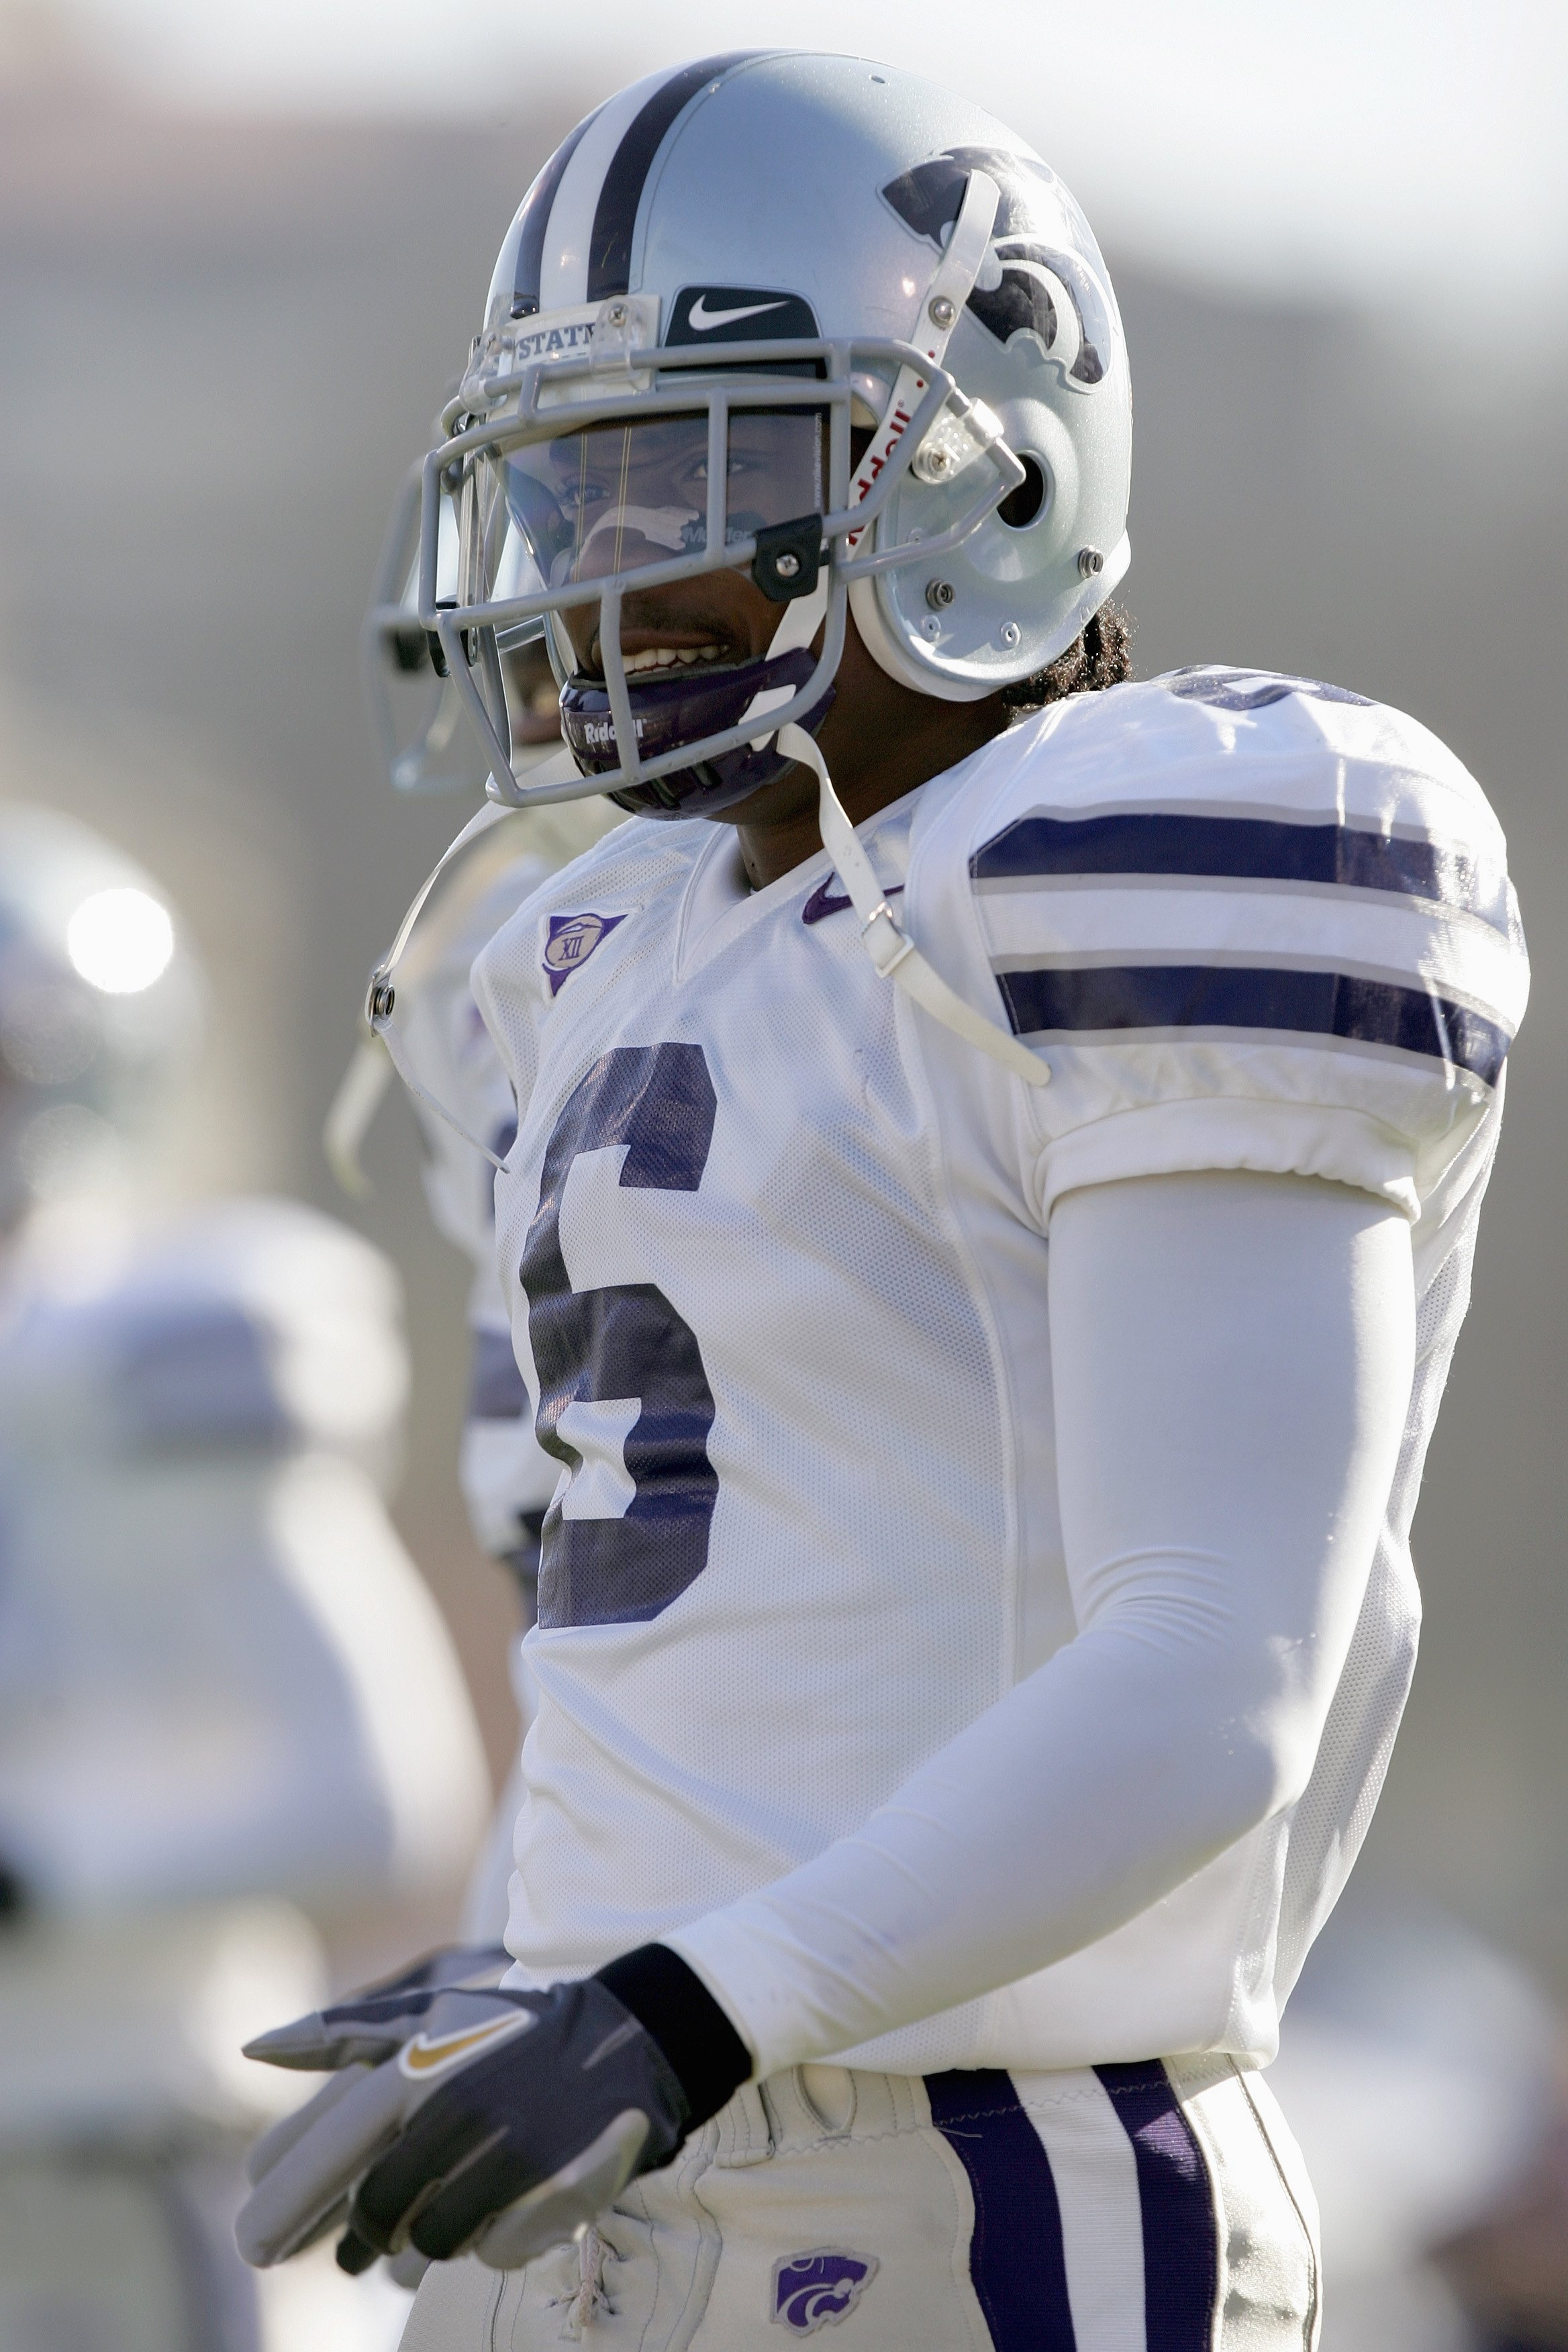 Buildwise, Johnathan Durham bears some resemblance to former K-State cornerback Byron Garvin. Both are tall, physical corners who pose a special challenge to wide receivers.